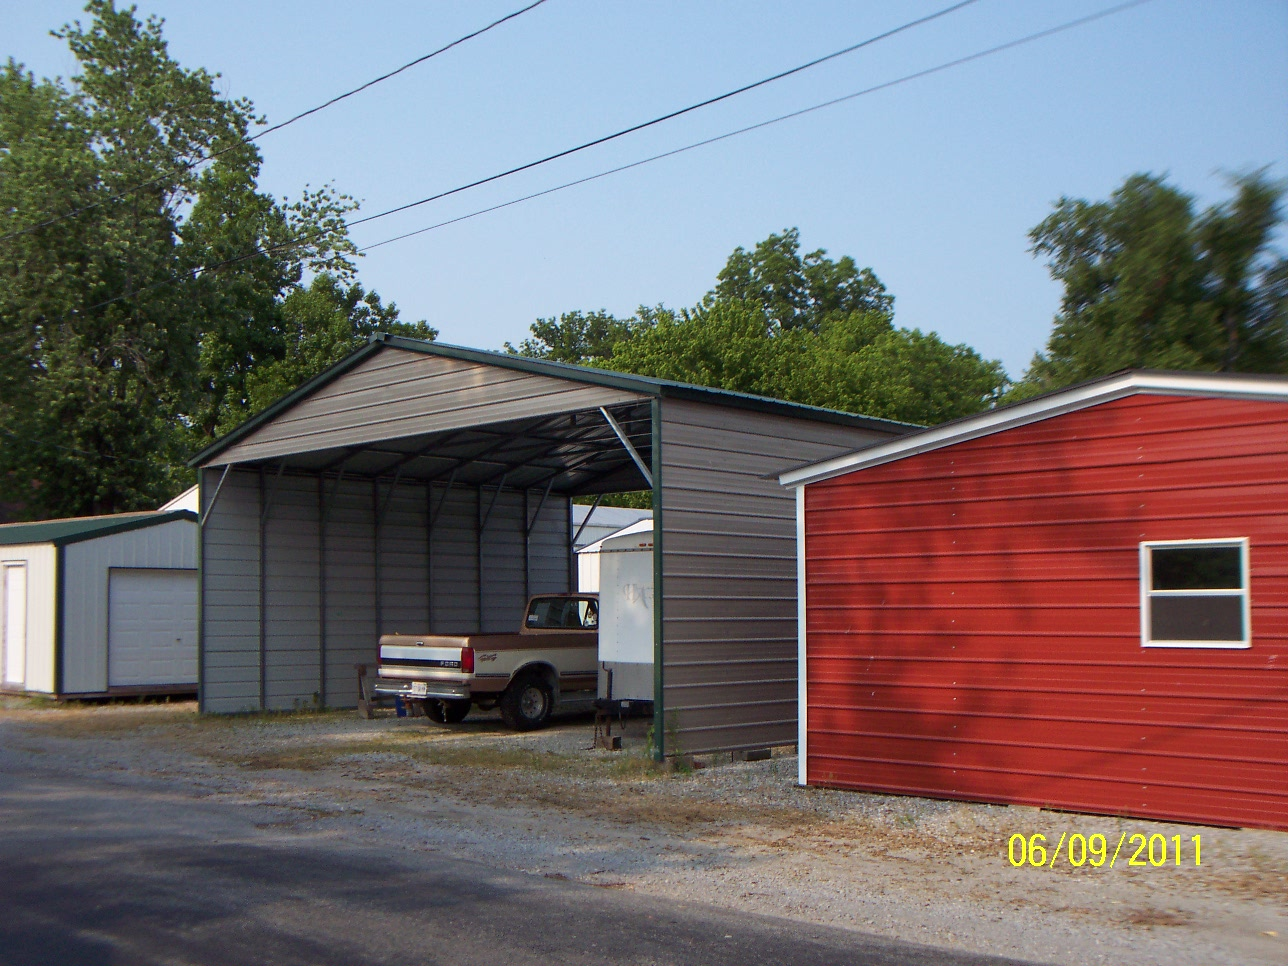 Garage Storage Buildings Carolina Carports Carports Garages And Storage Buildings Dean